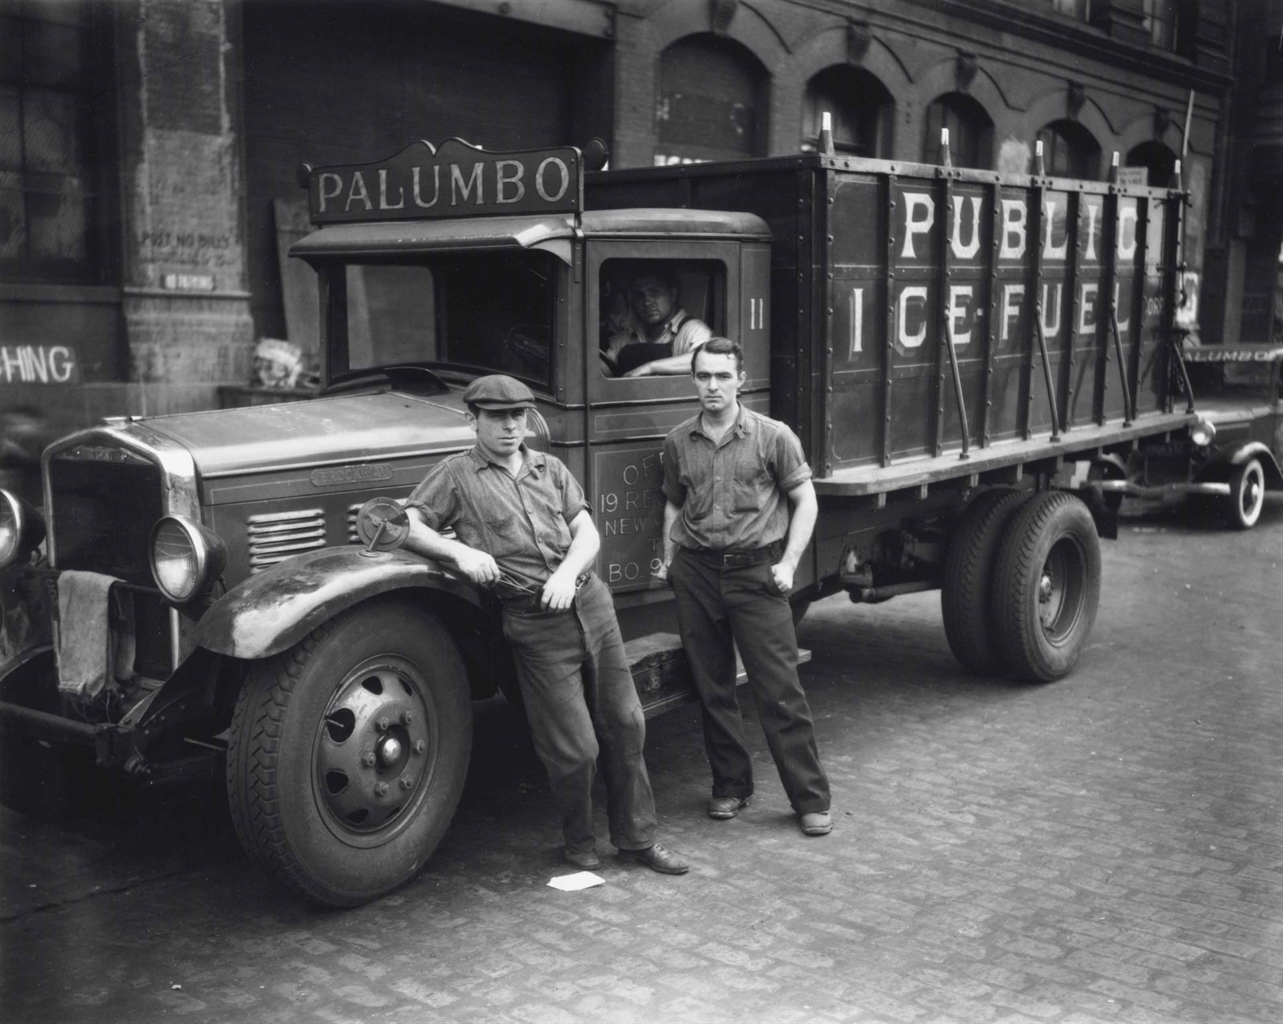 Walker Evans-Untitled (Palumbo Public Ice-Fuel Corp. Truck, New York)-1934